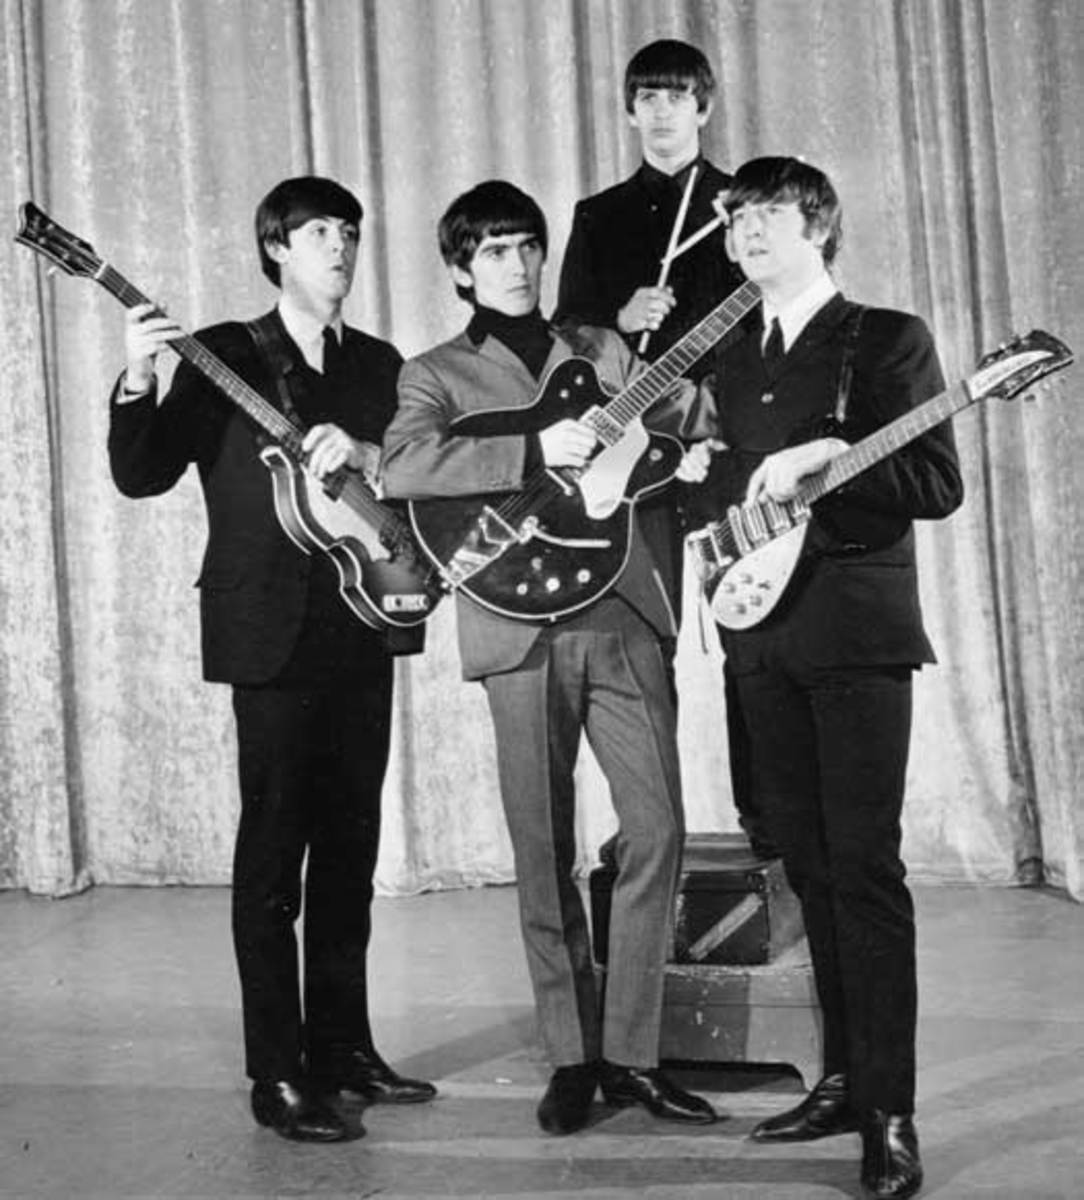 MOP-TOP HAIRSTYLES at their height of popularity: The Beatles appear on 'The Ed Sullivan Show' in 1964. Photo courtesy Universal Music Group/Copyright CBS Photography 1964